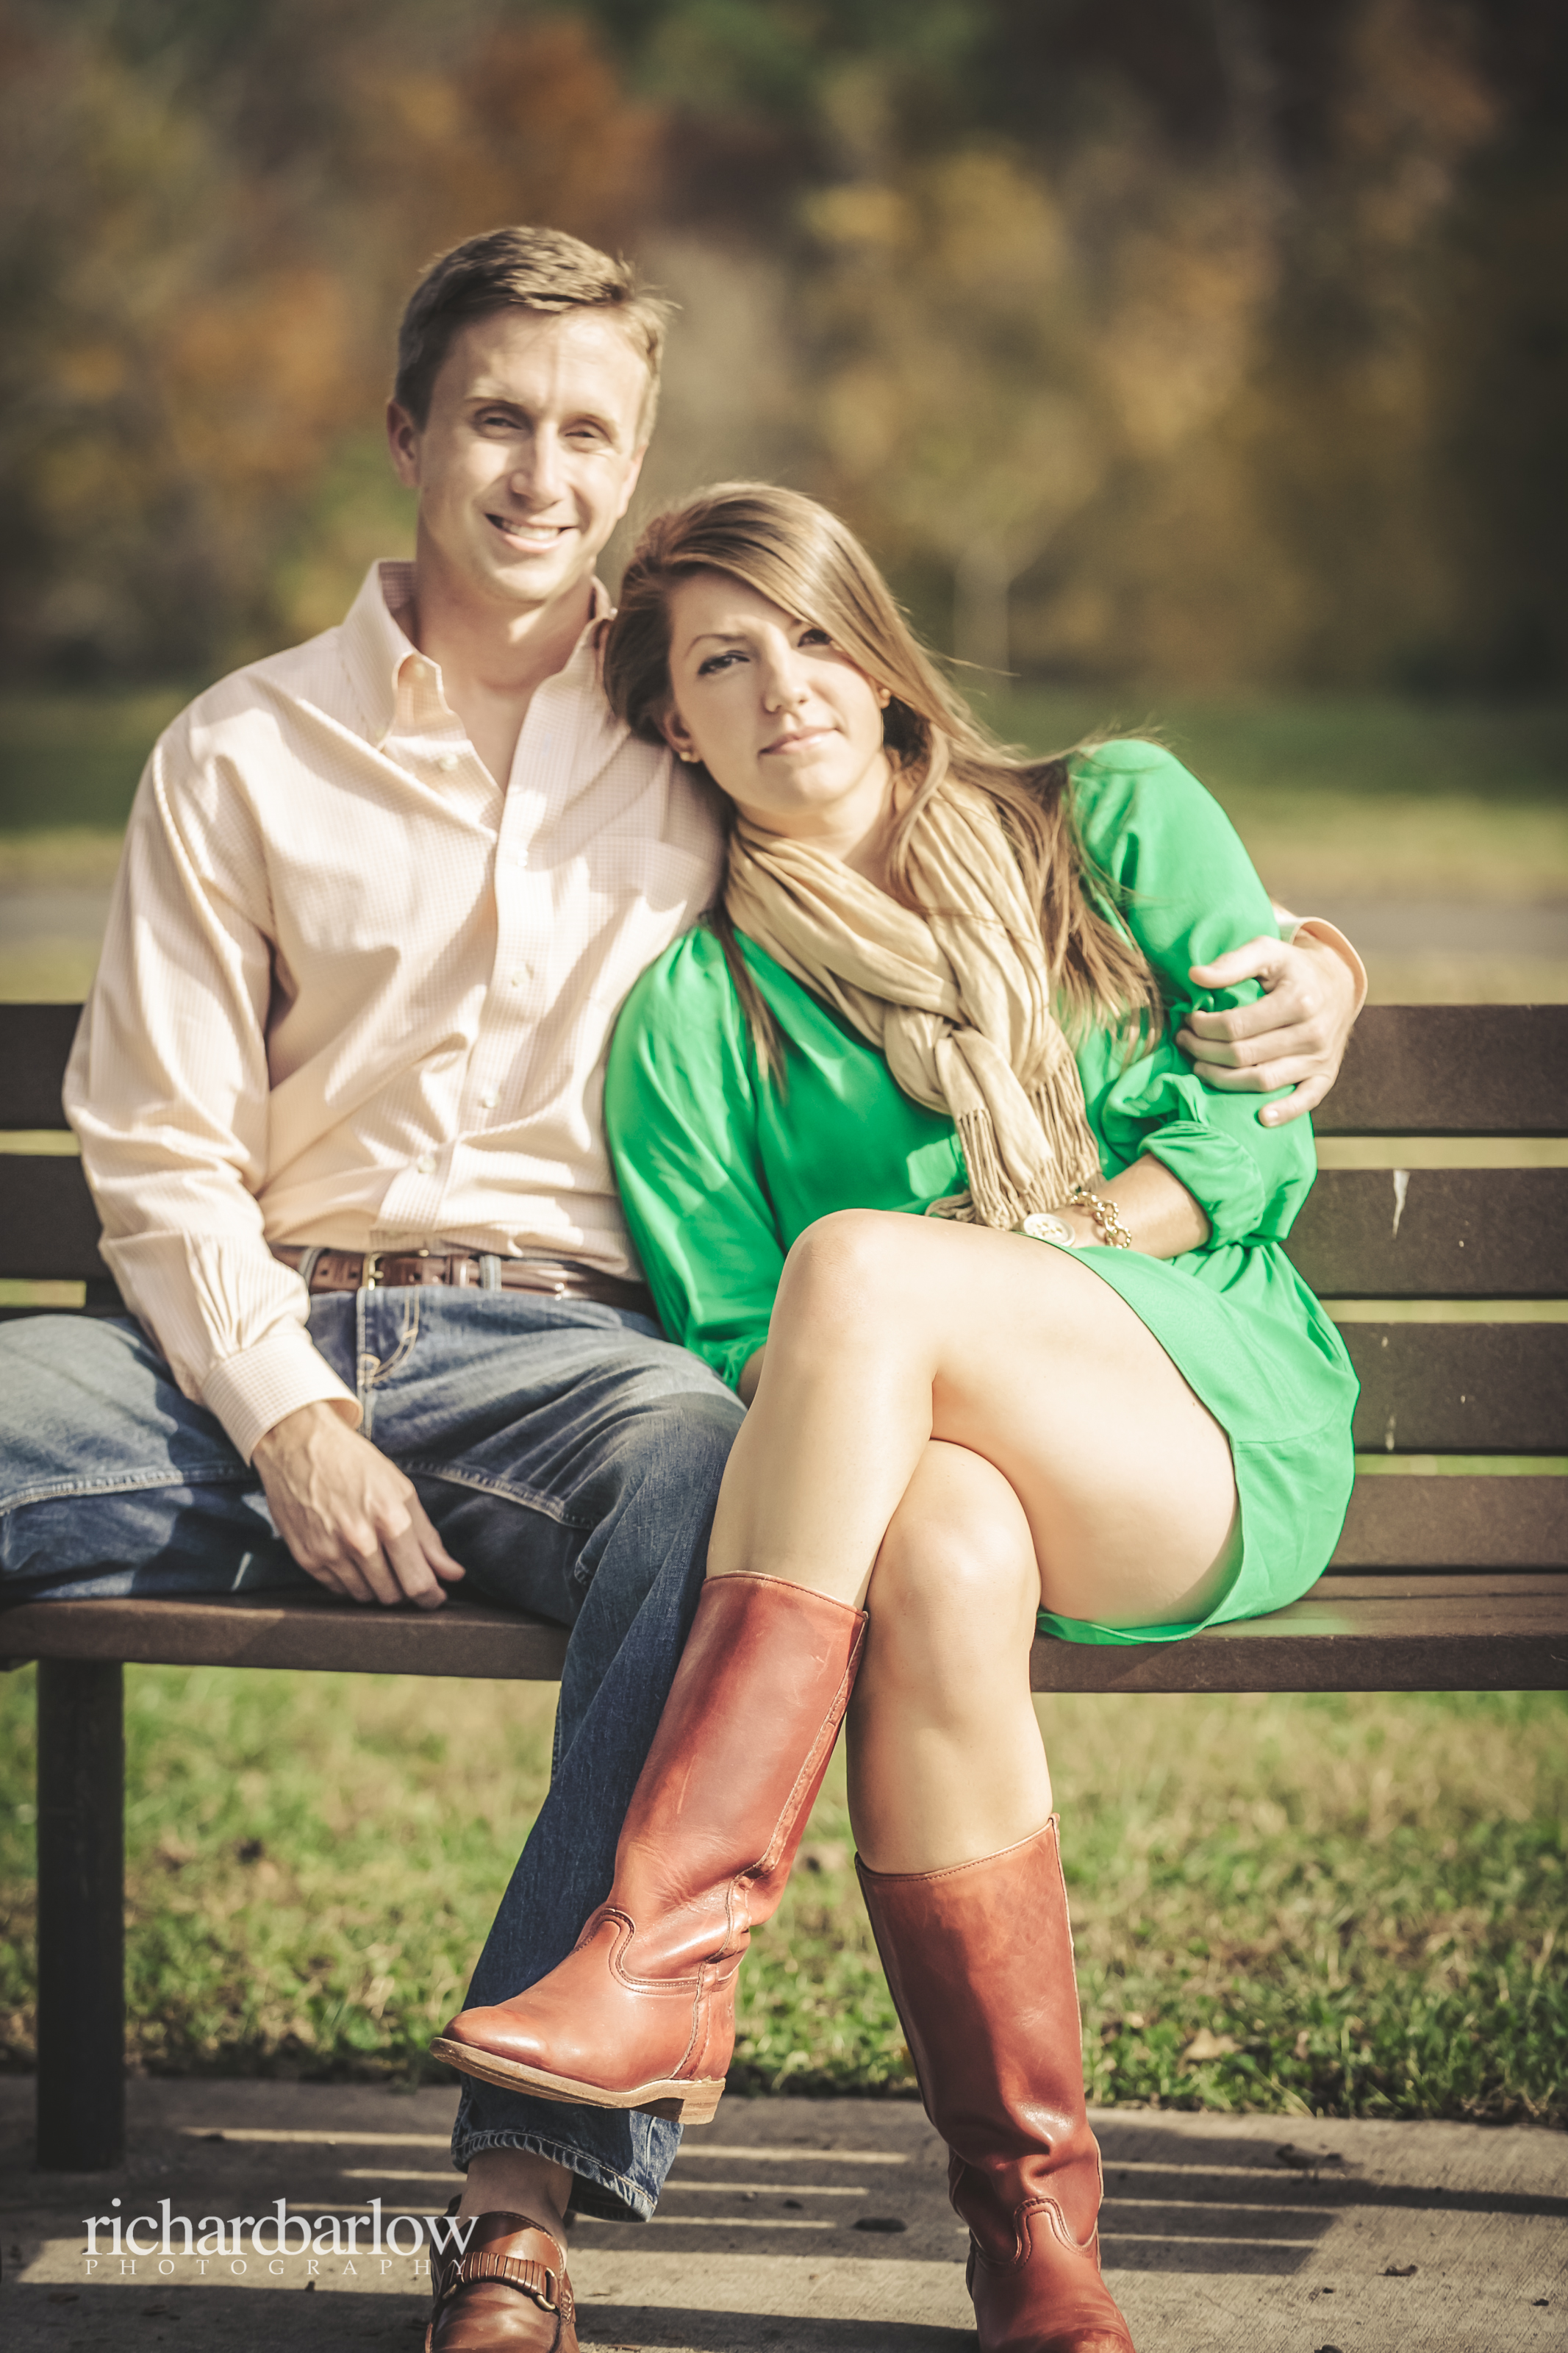 richard barlow photography - Graham and Lauren Engagement Session Wake Forest-3.jpg